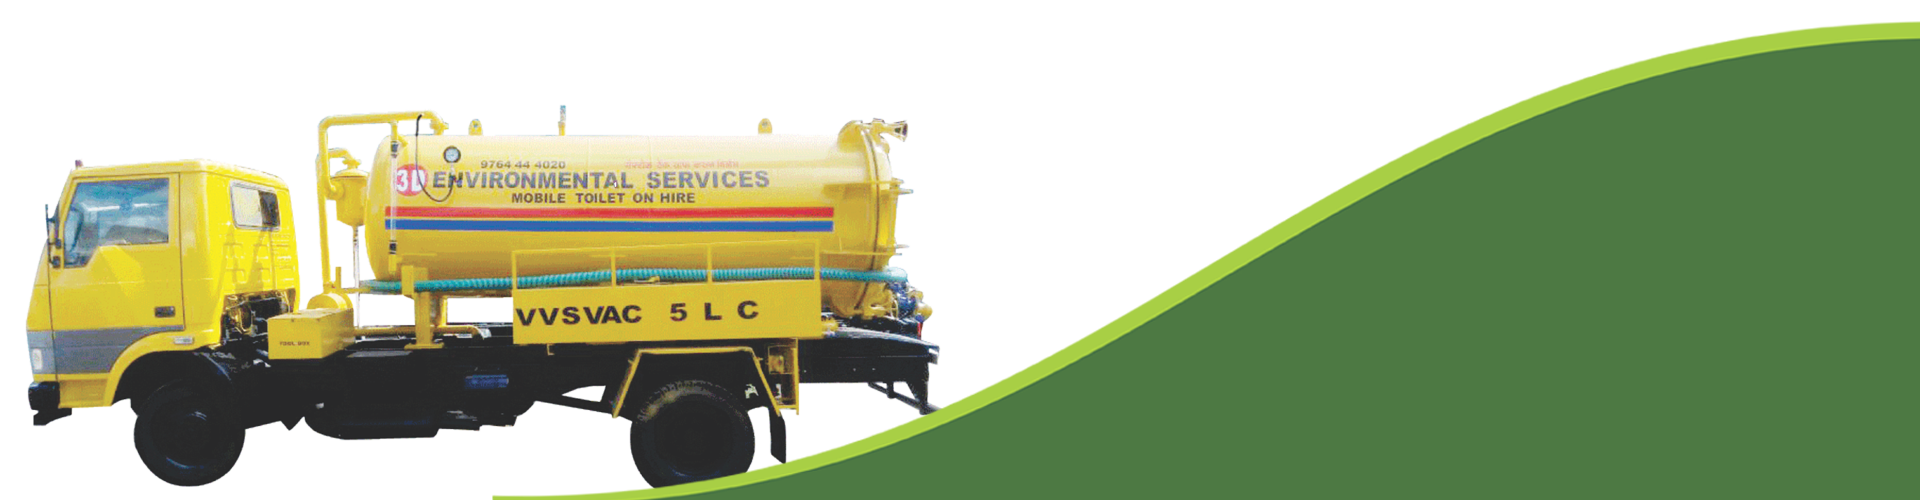 Septic Tanks waste removal Service